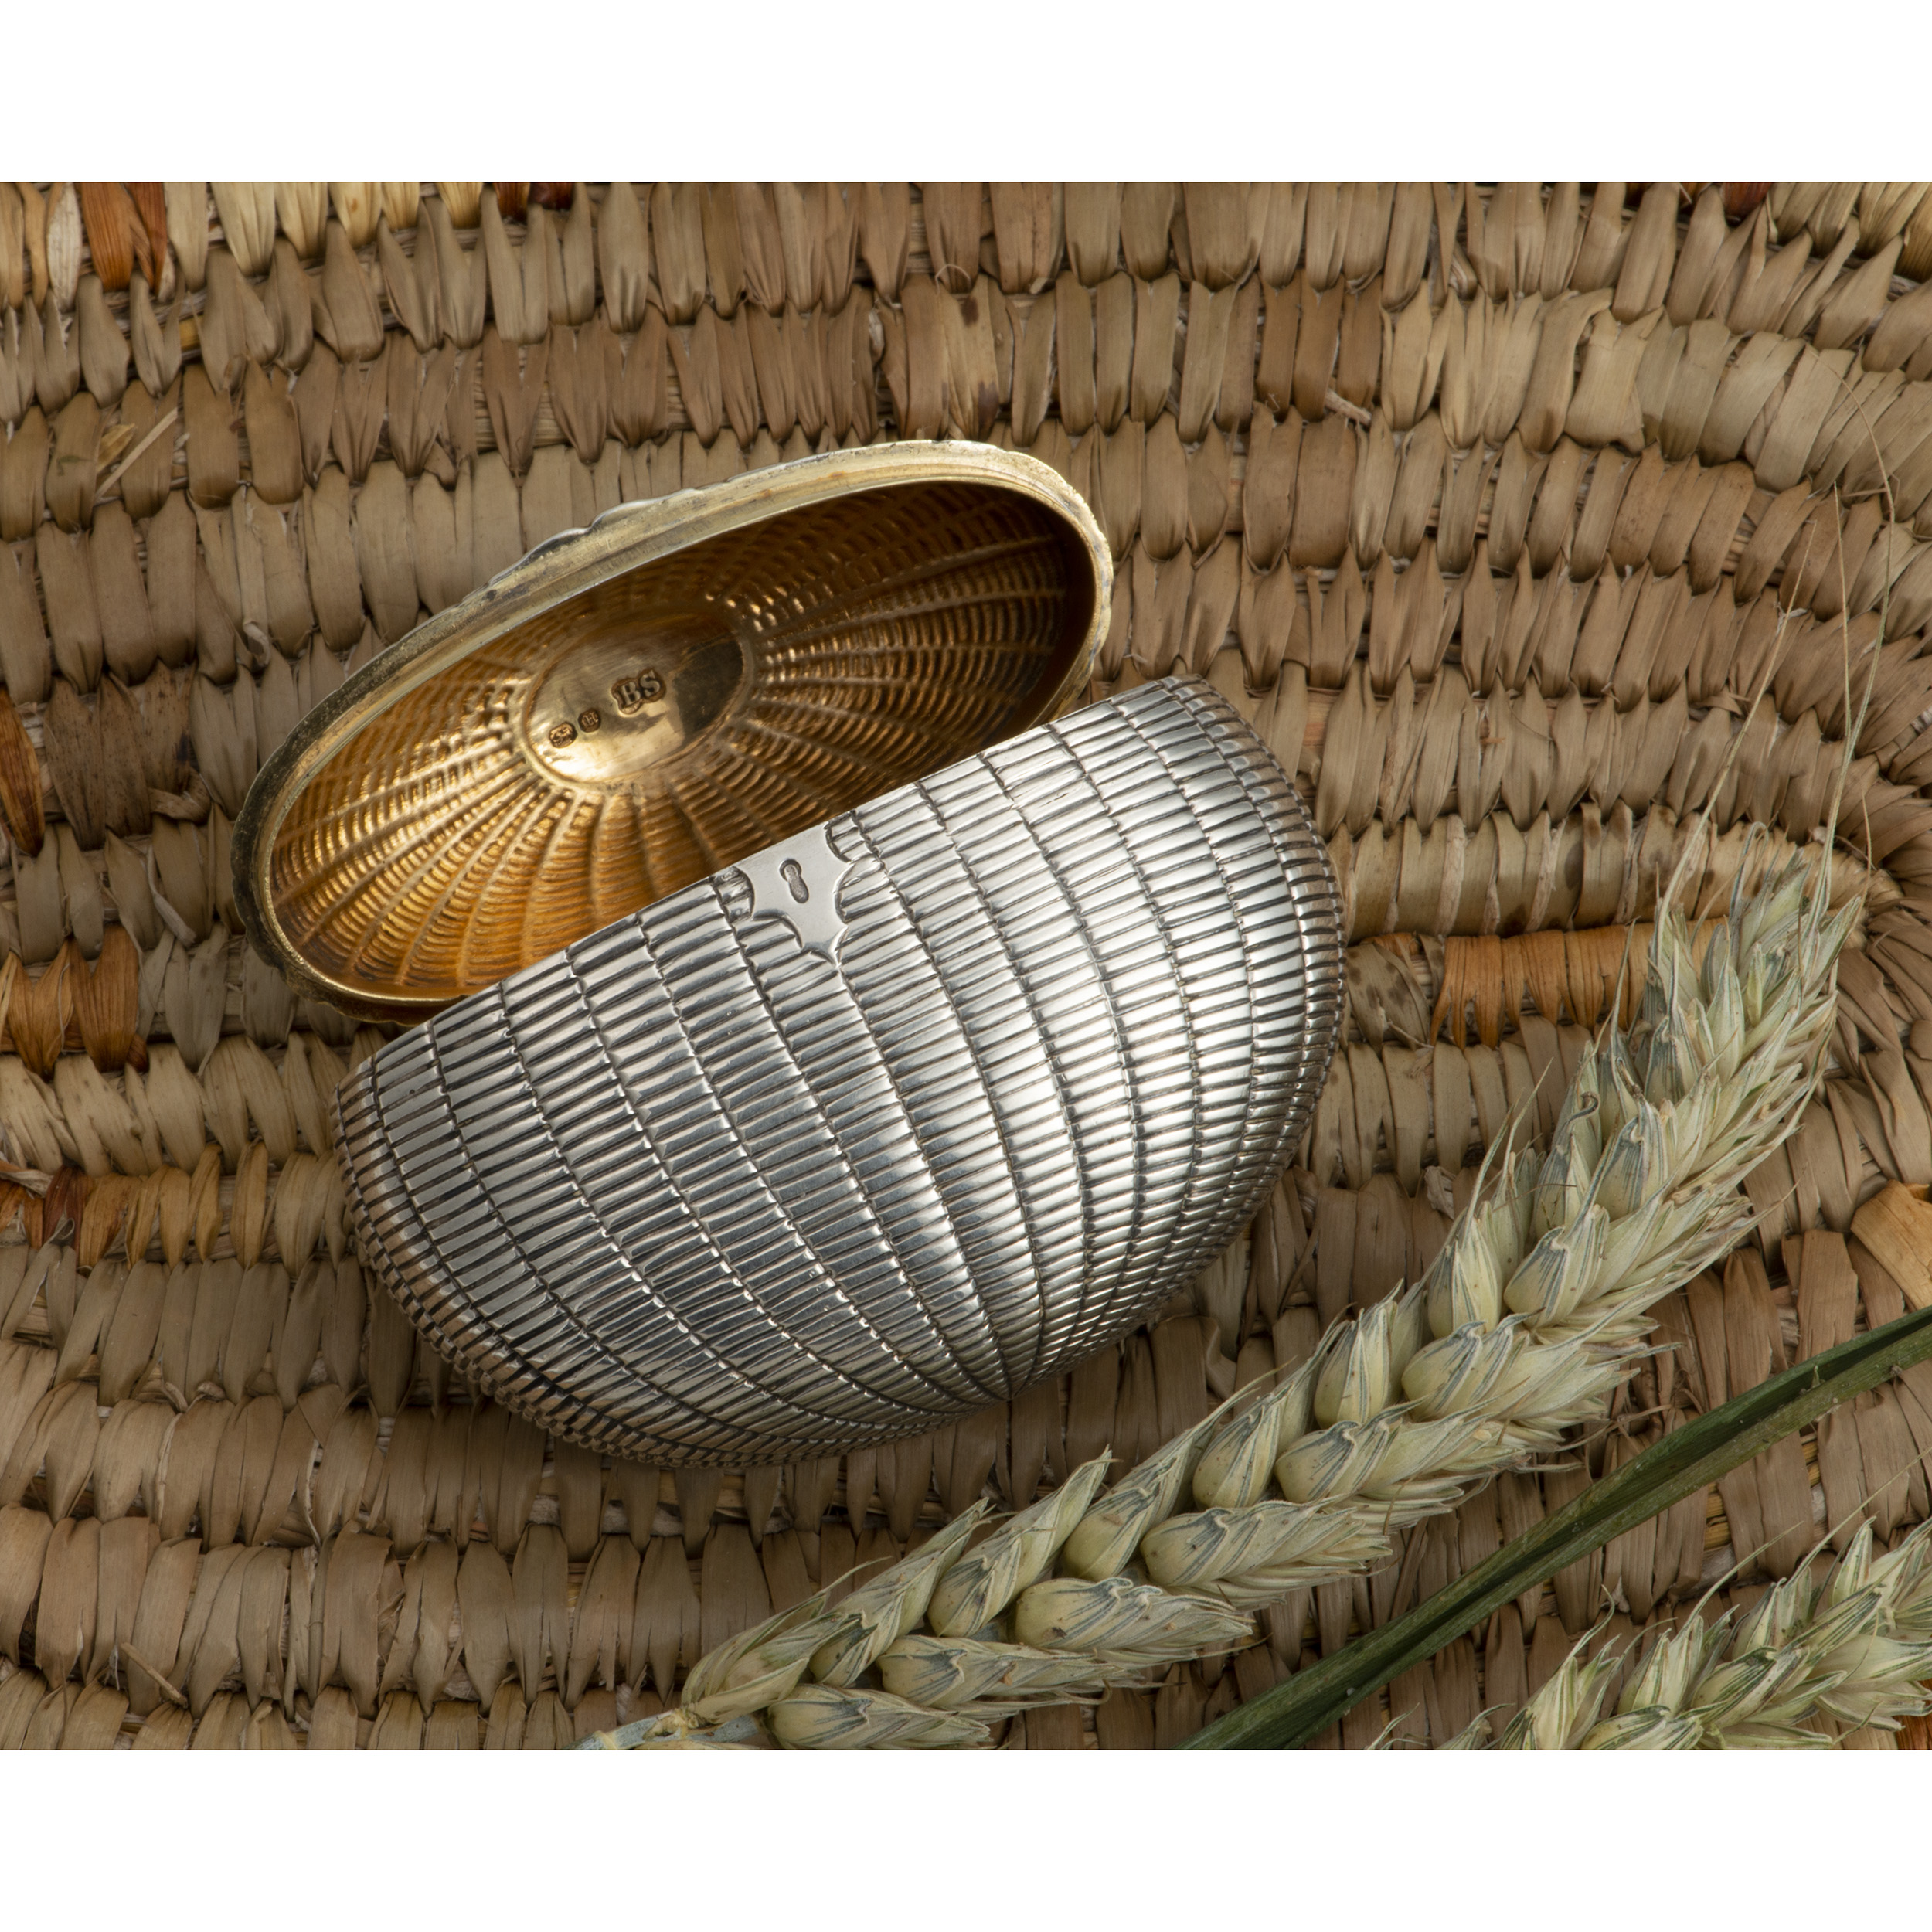 An Early Victorian Silver Snuffbox In The Form Of A Wicker Basket.